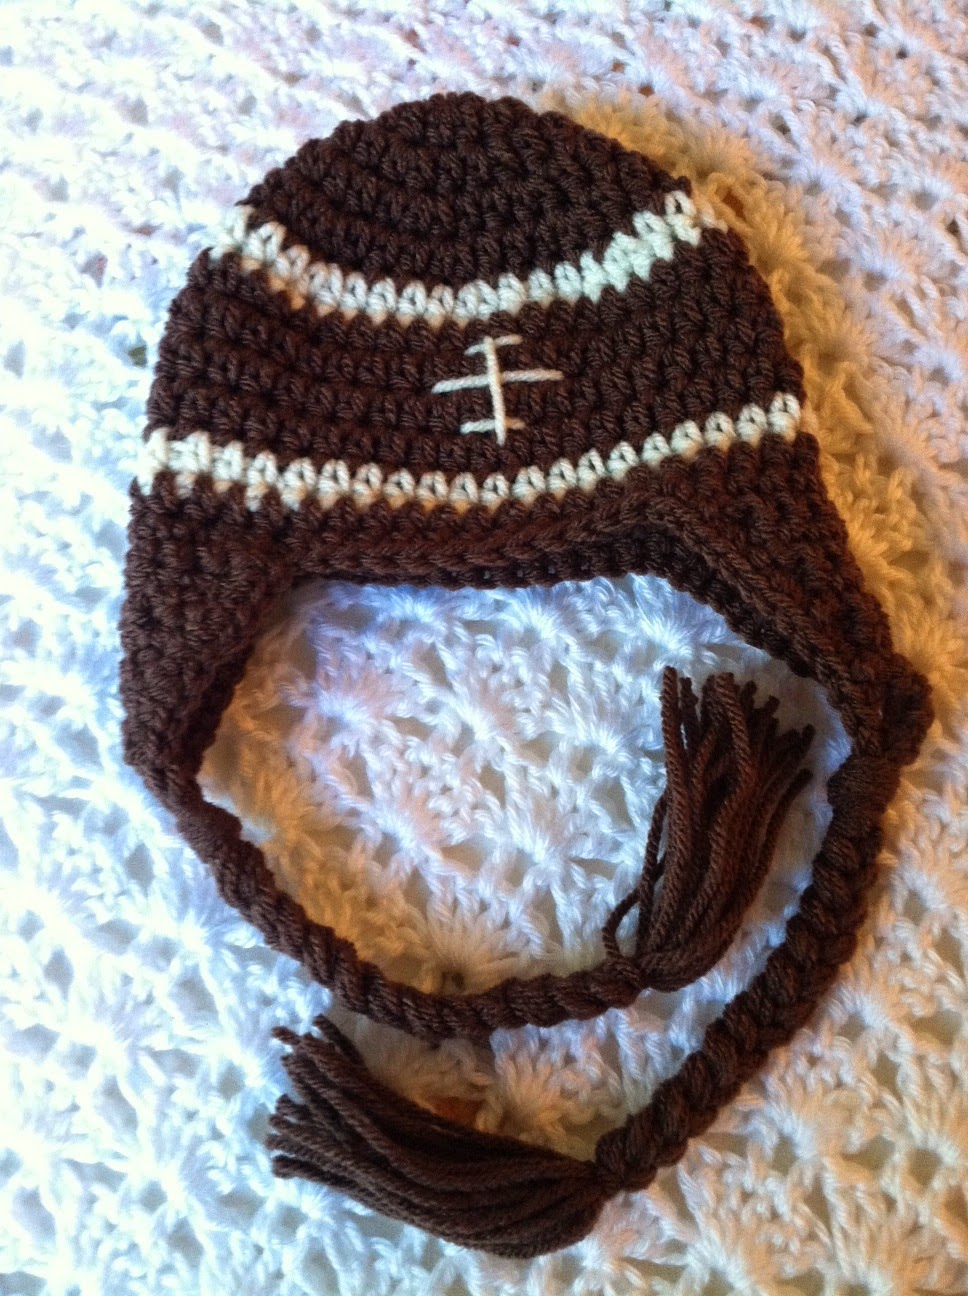 Crochet Hat Pattern For 8 Month Old : Lakeview Cottage Kids: Crochet Football Earflap Hat FREE ...